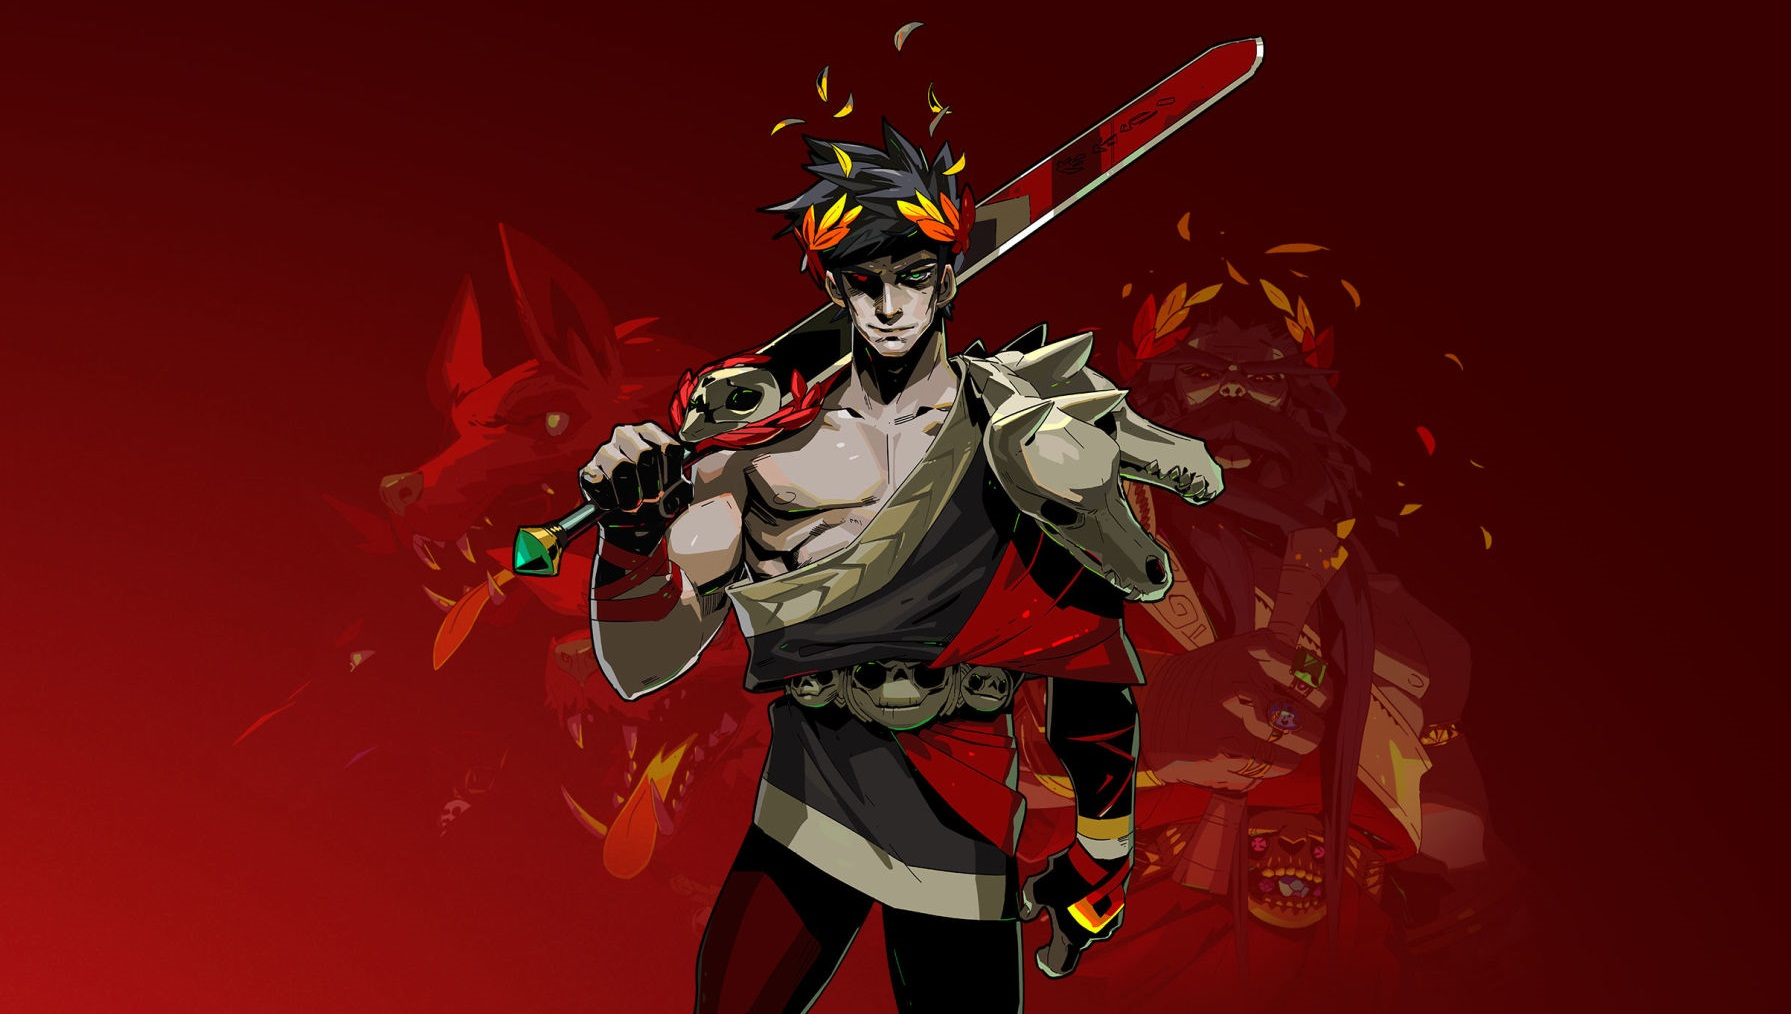 Supergiant explains how Zagreus became the protagonist of Hades - htxt.africa